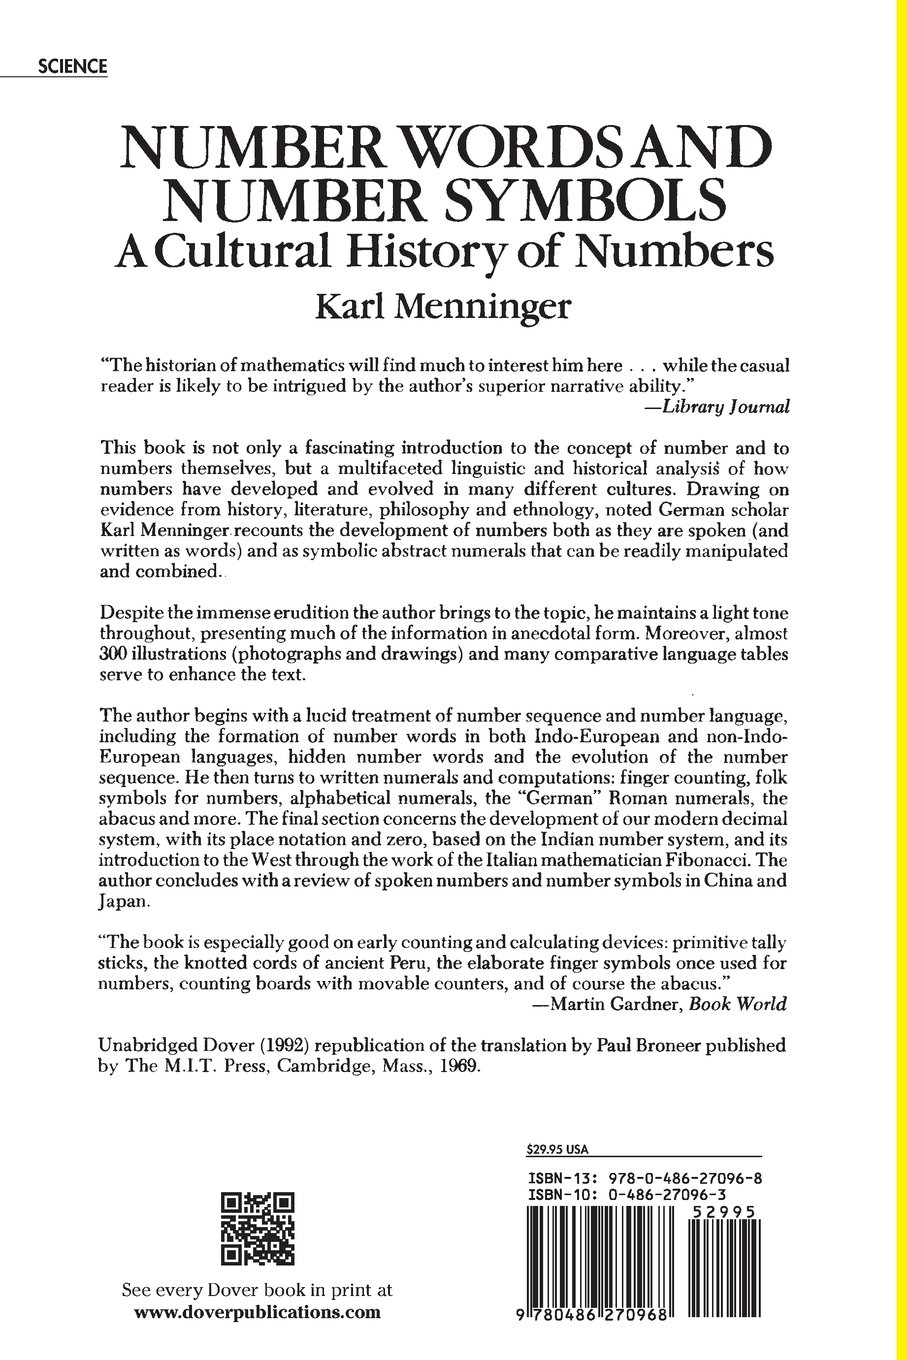 Number words and number symbols a cultural history of numbers number words and number symbols a cultural history of numbers karl menninger 9780486270968 amazon books buycottarizona